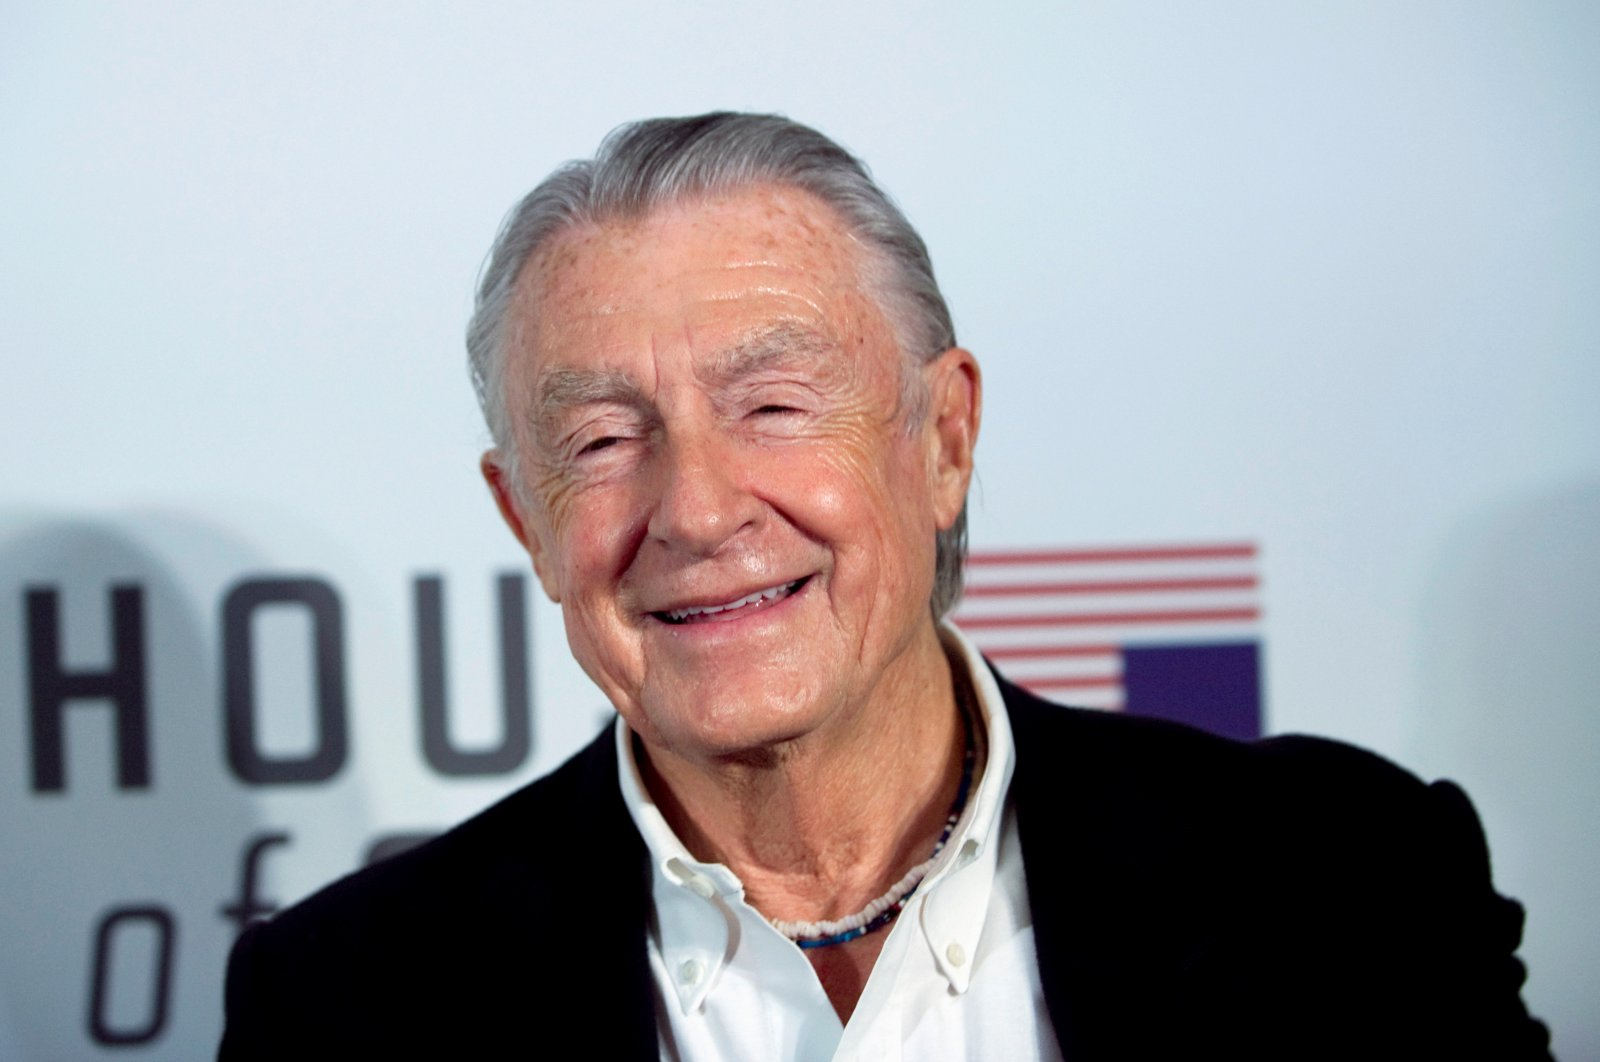 """Film director Joel Schumacher arrives at the premiere of Netflix's television series """"House of Cards"""" at Alice Tully Hall in the Lincoln Center in New York City, Jan. 30, 2013. (Reuters Photo)"""